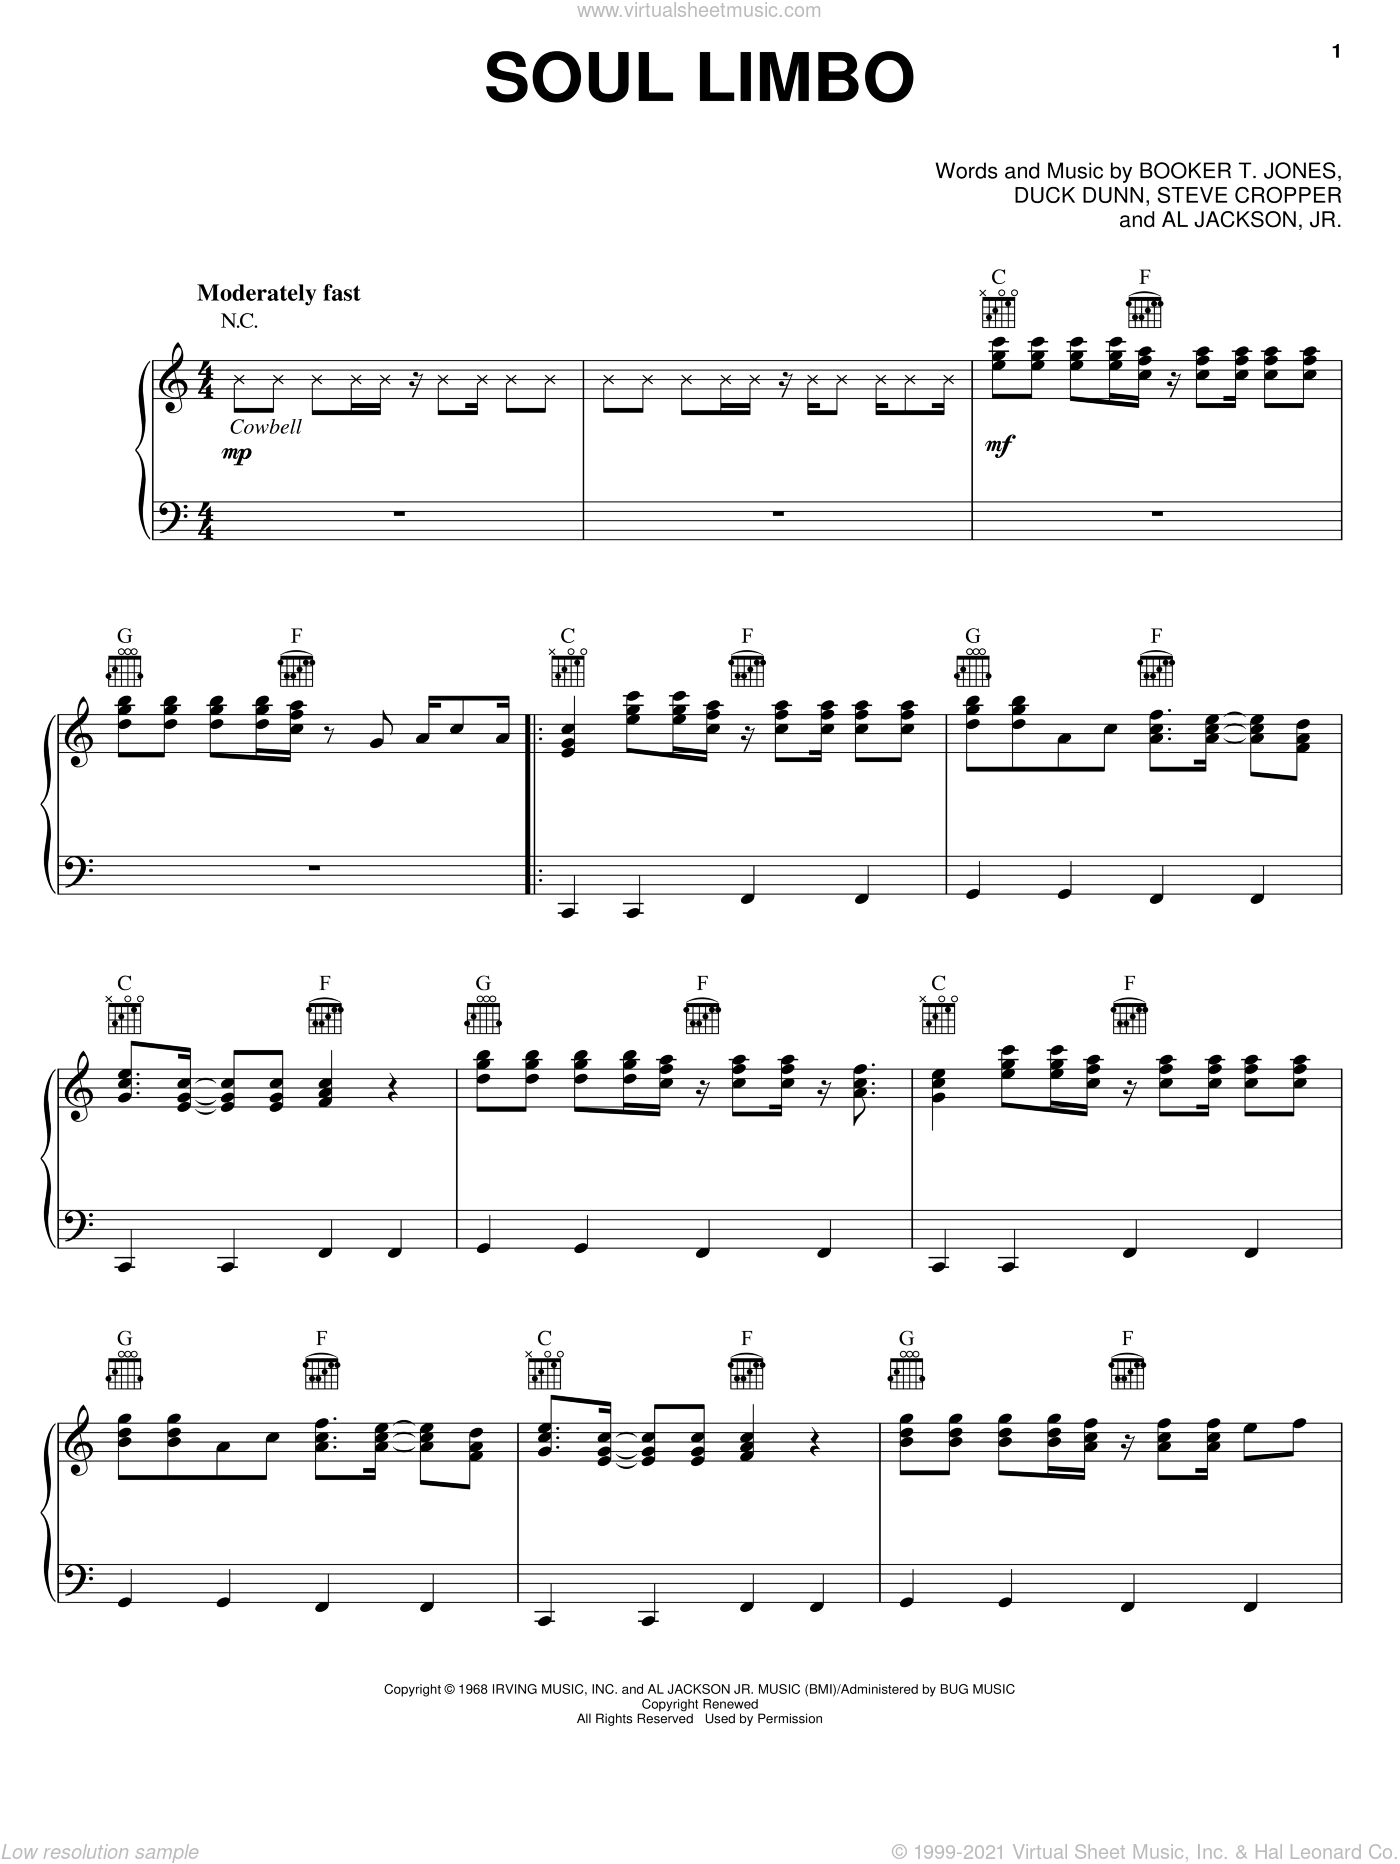 Soul Limbo sheet music for voice, piano or guitar by Duck Dunn and Booker T. Jones. Score Image Preview.